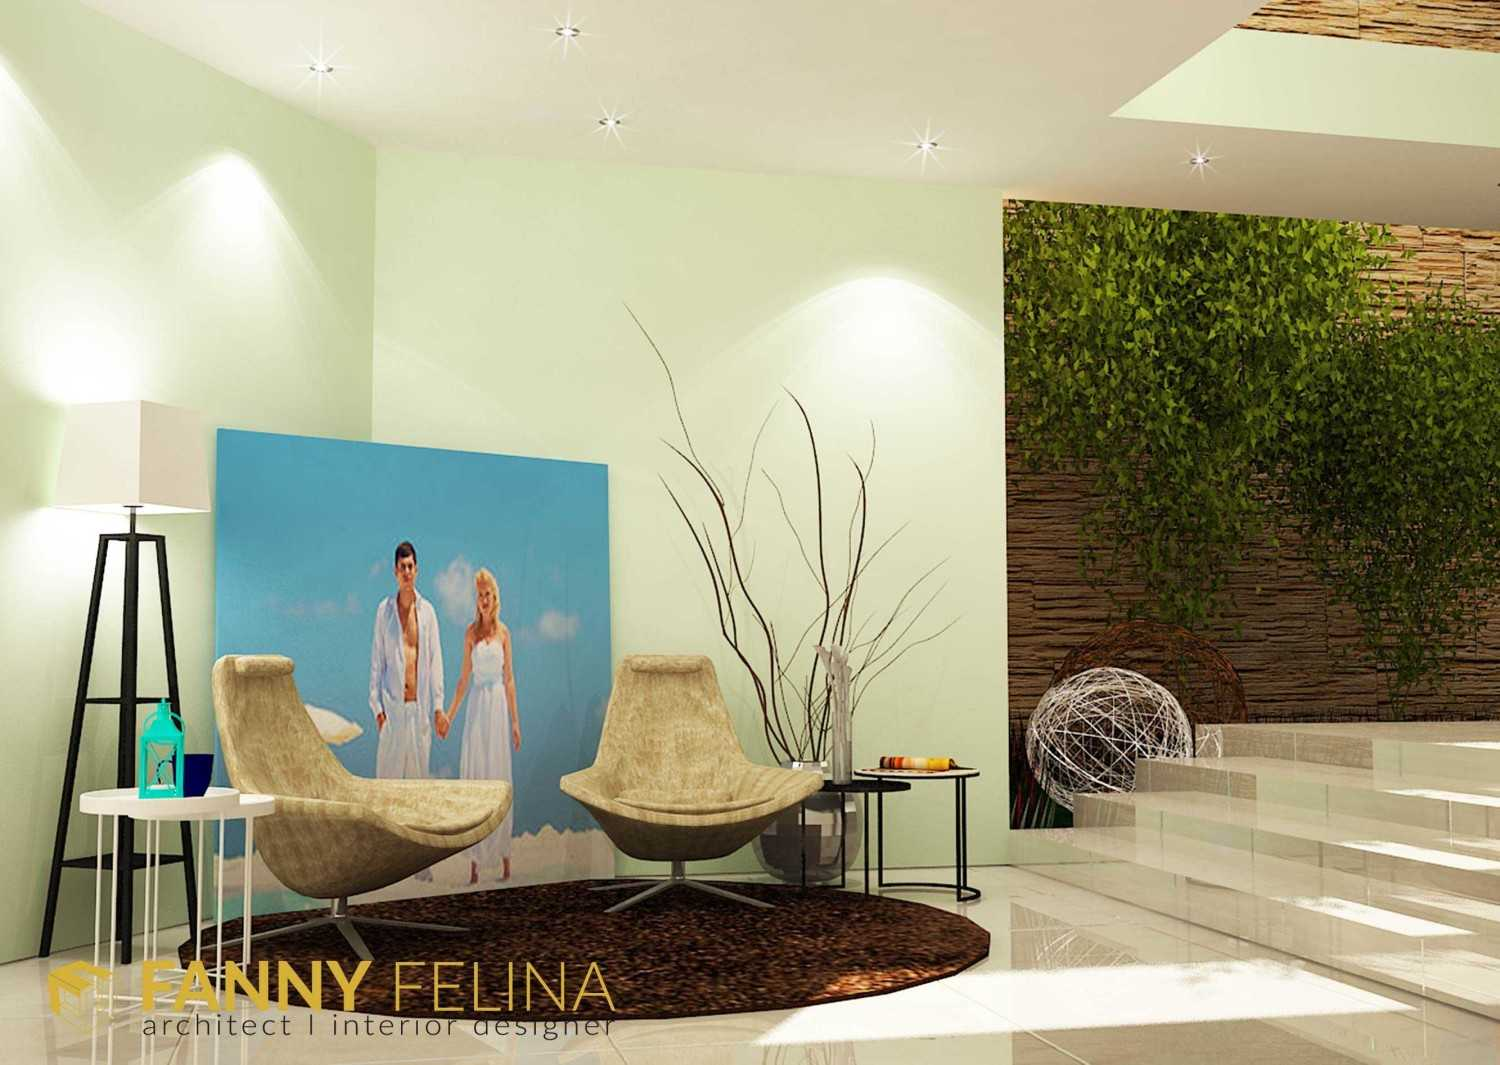 Fanny Felina Architecture & Interior Design Hercules House Surabaya, Surabaya City, East Java, Indonesia Surabaya, Surabaya City, East Java, Indonesia 05 Modern 34578